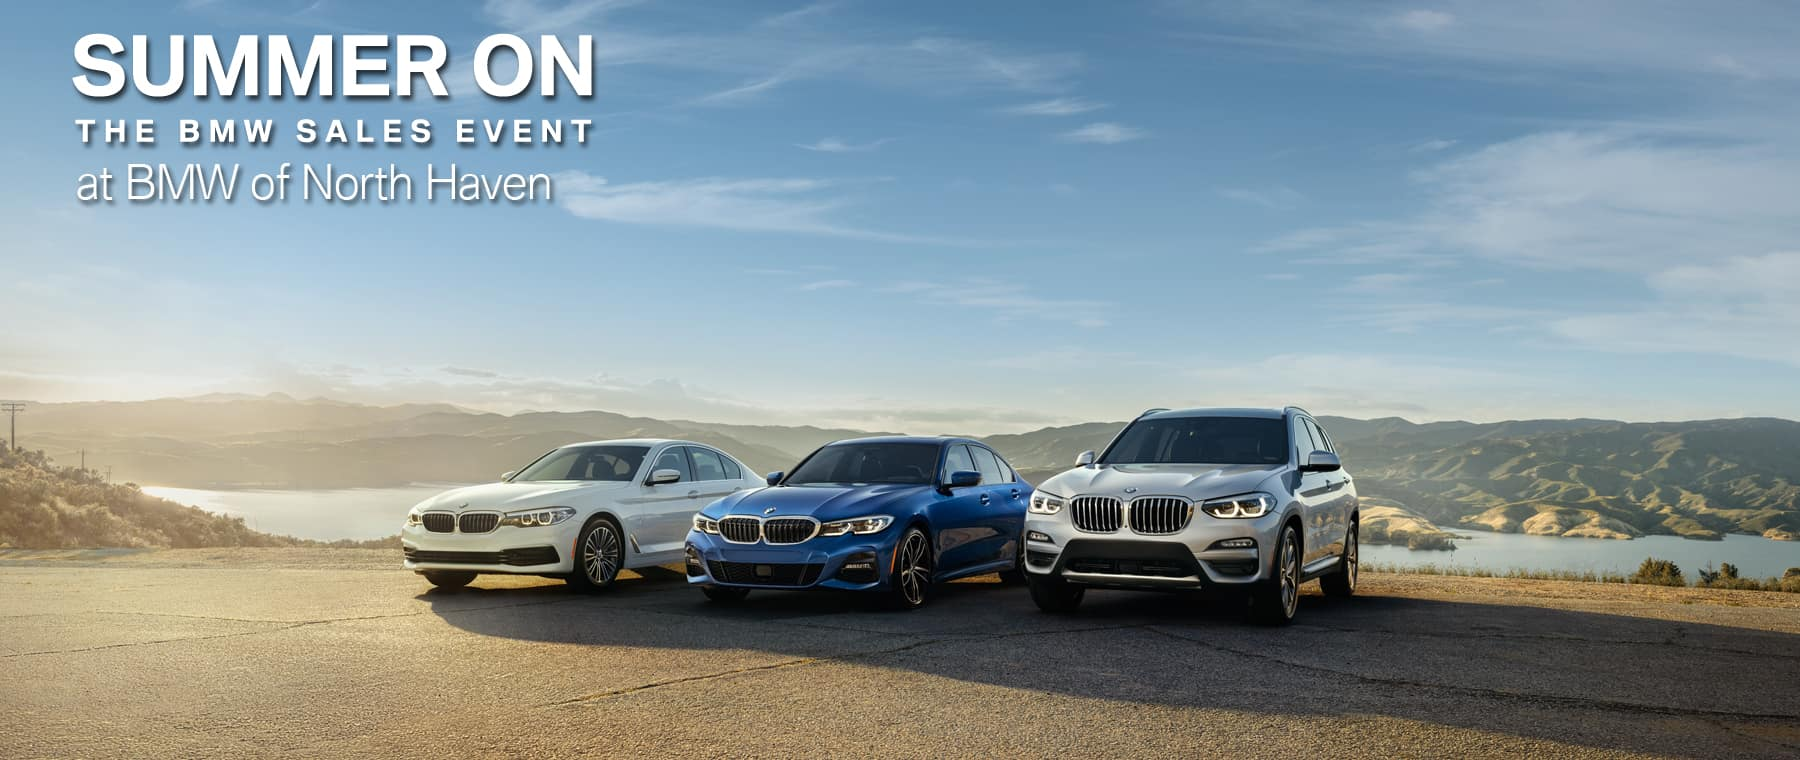 BMW North Haven Summer On Event